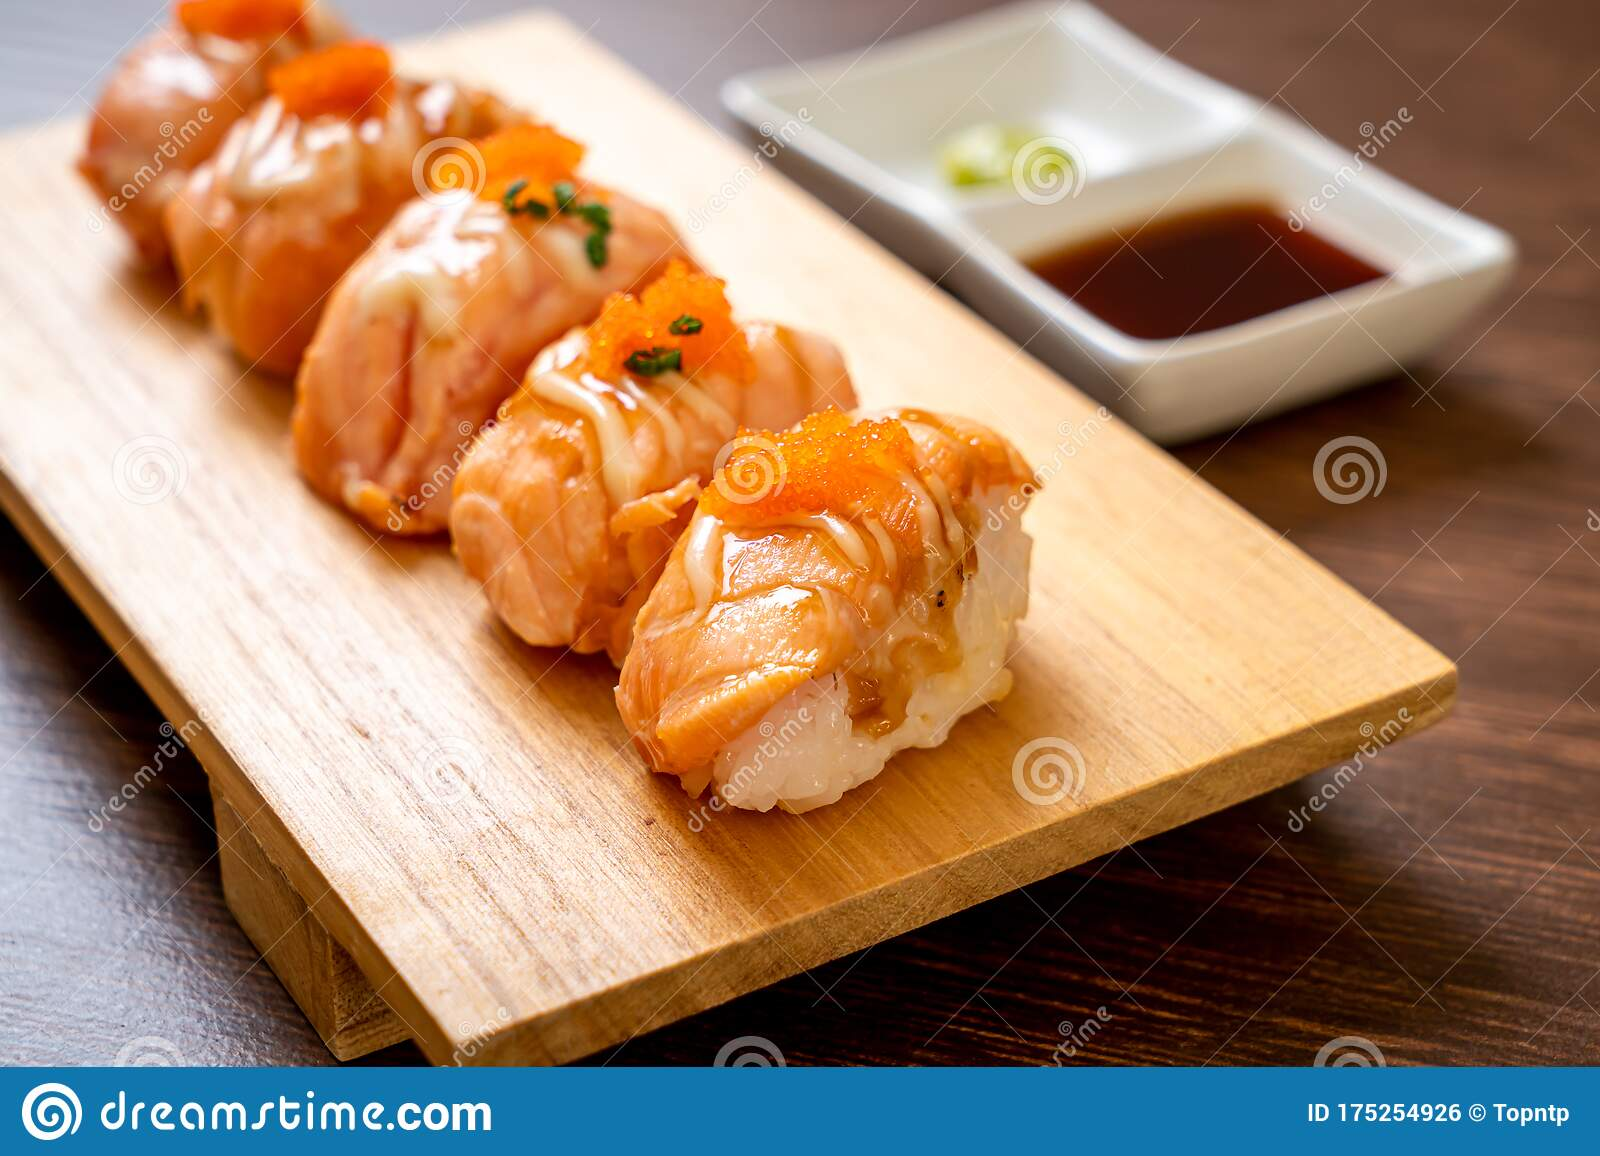 Grilled Salmon Sushi On Plate Stock Photo Image Of Menu Dinner 175254926